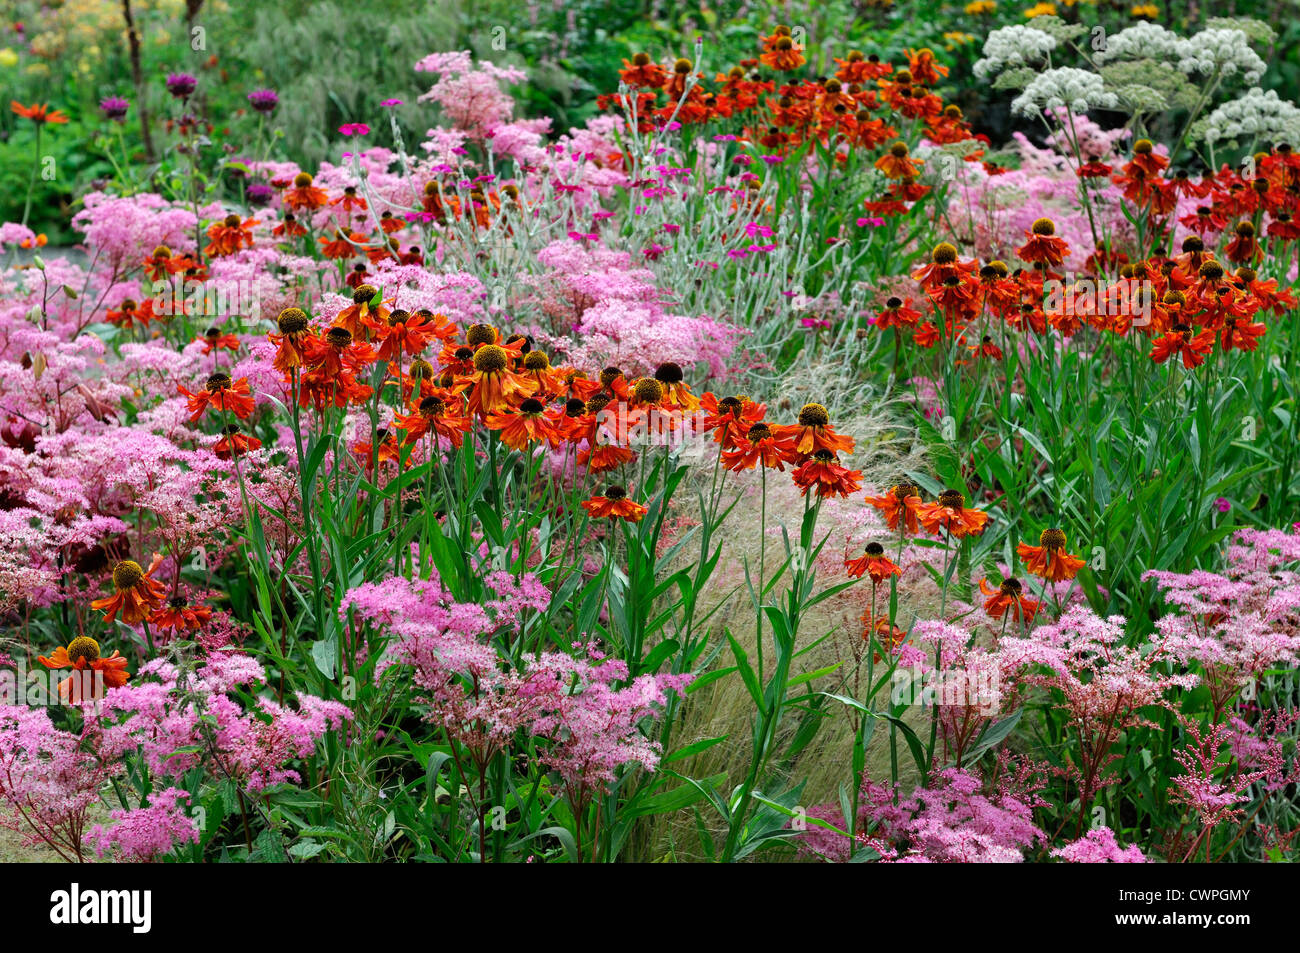 late summer early autumn herbaceous perennial bed border